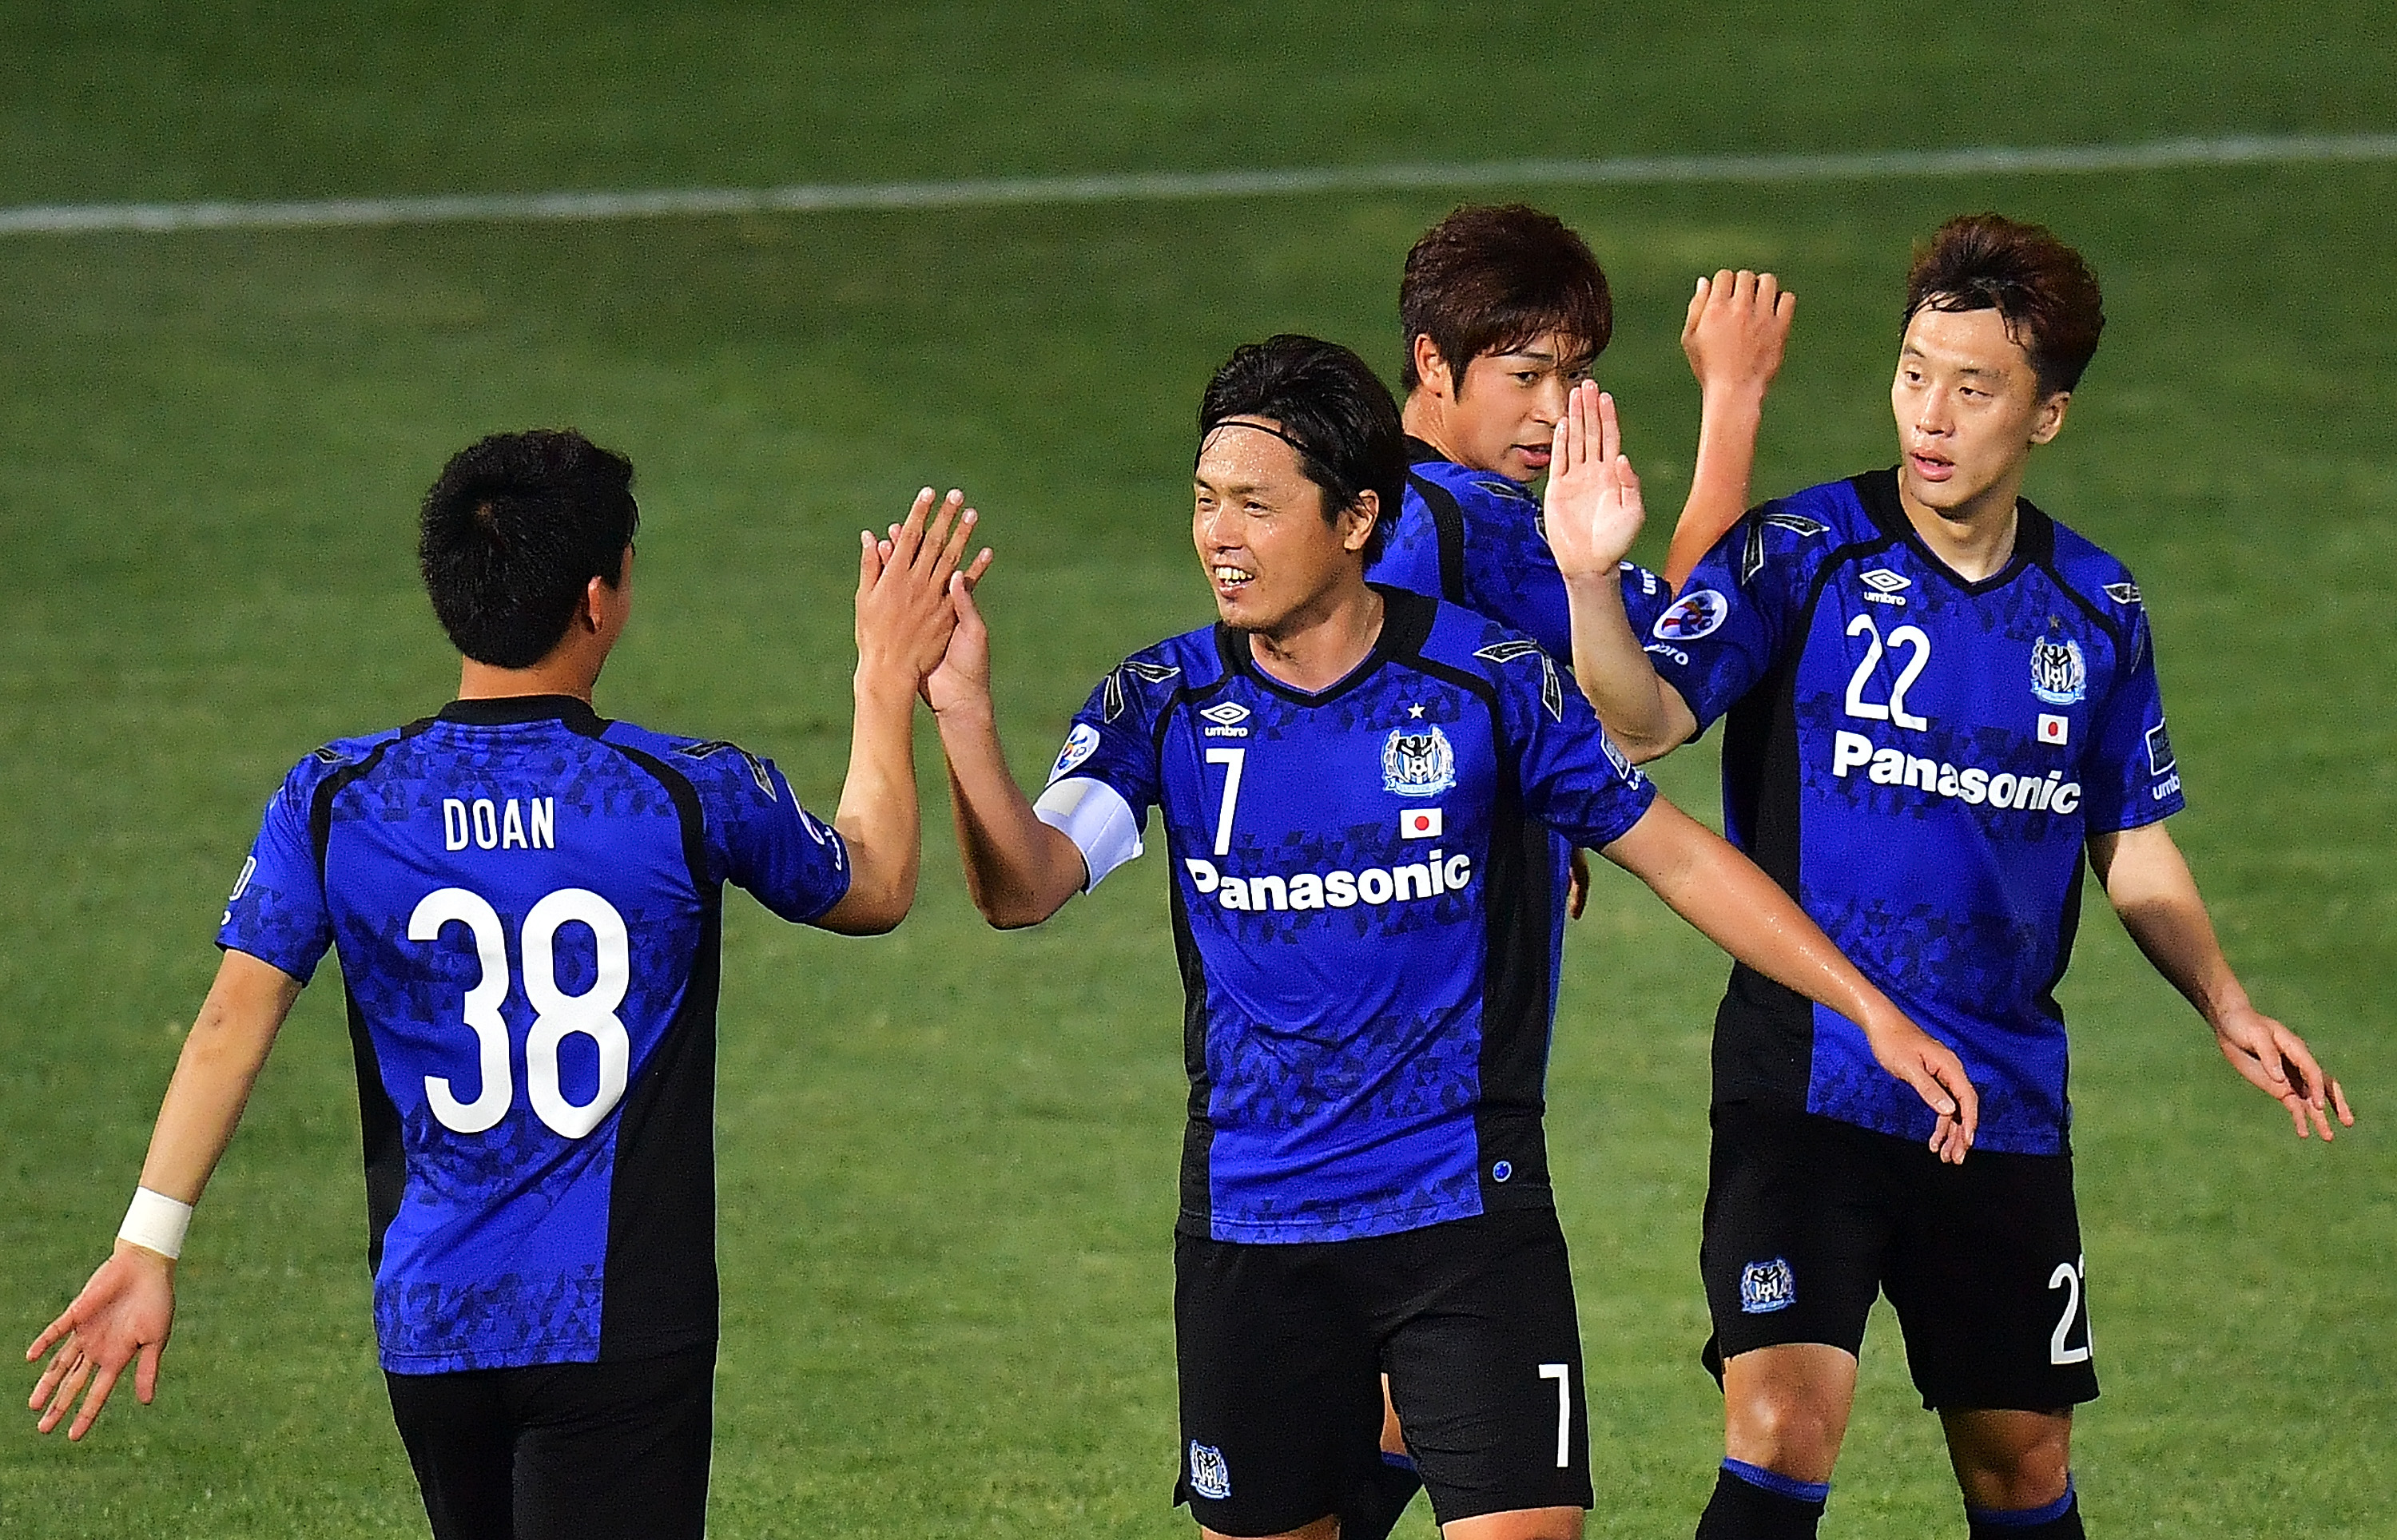 Gamba Osaka players celebrate after scoring a goal during the AFC Asian Champions League match between Adelaide United and Gamba Osaka at Coopers Stadium on February 22, 2017 in Adelaide, Australia